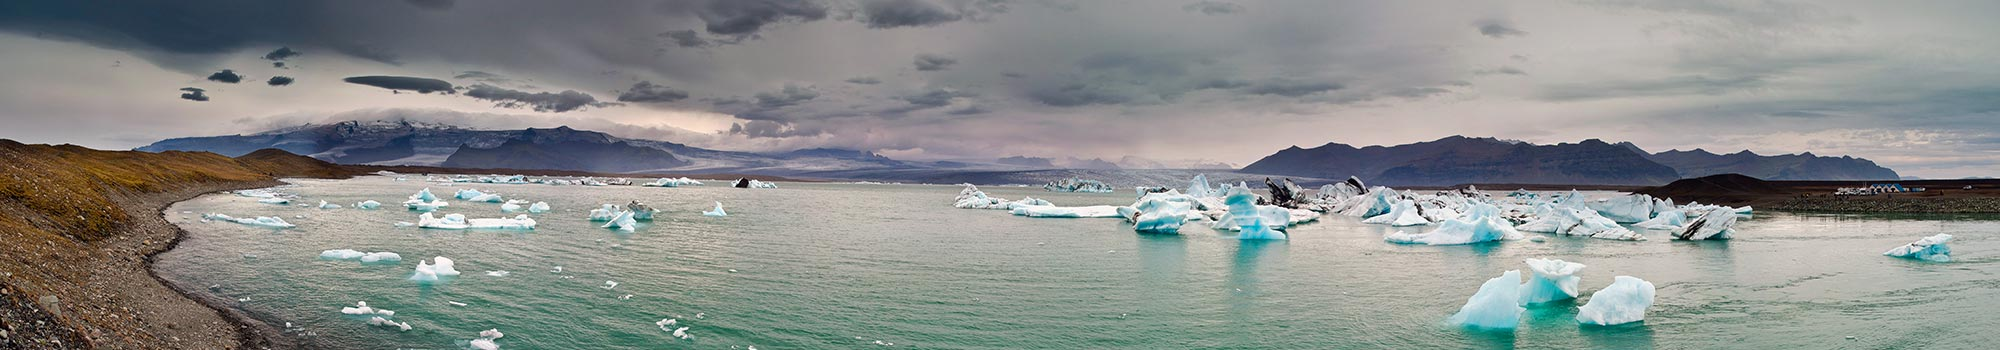 south-coast-glacier-lagoon